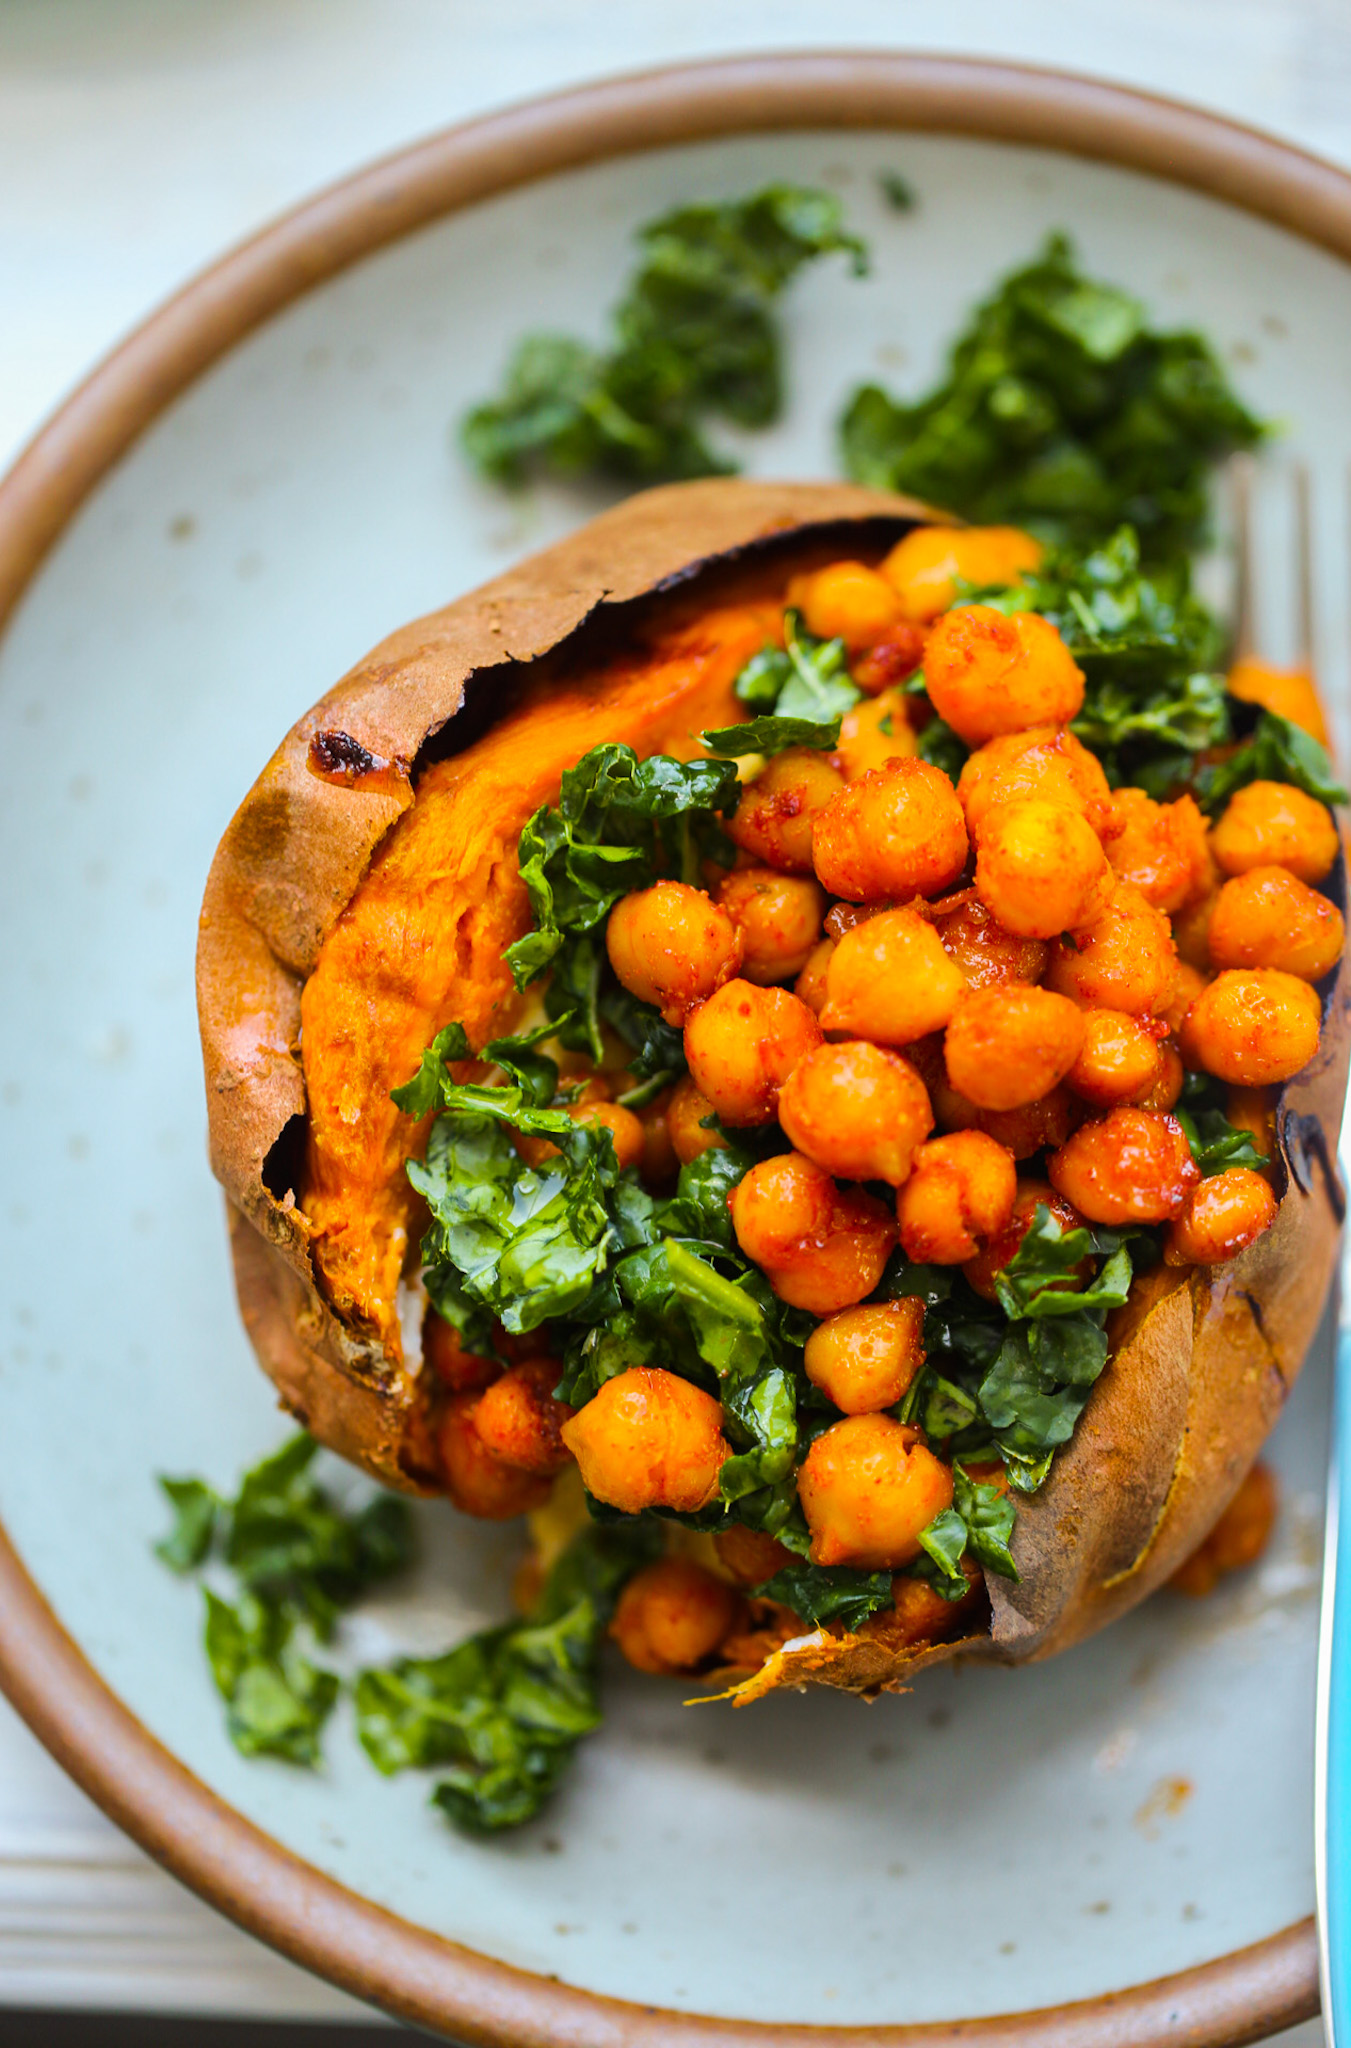 chickpea-stuffed sweet potatoes